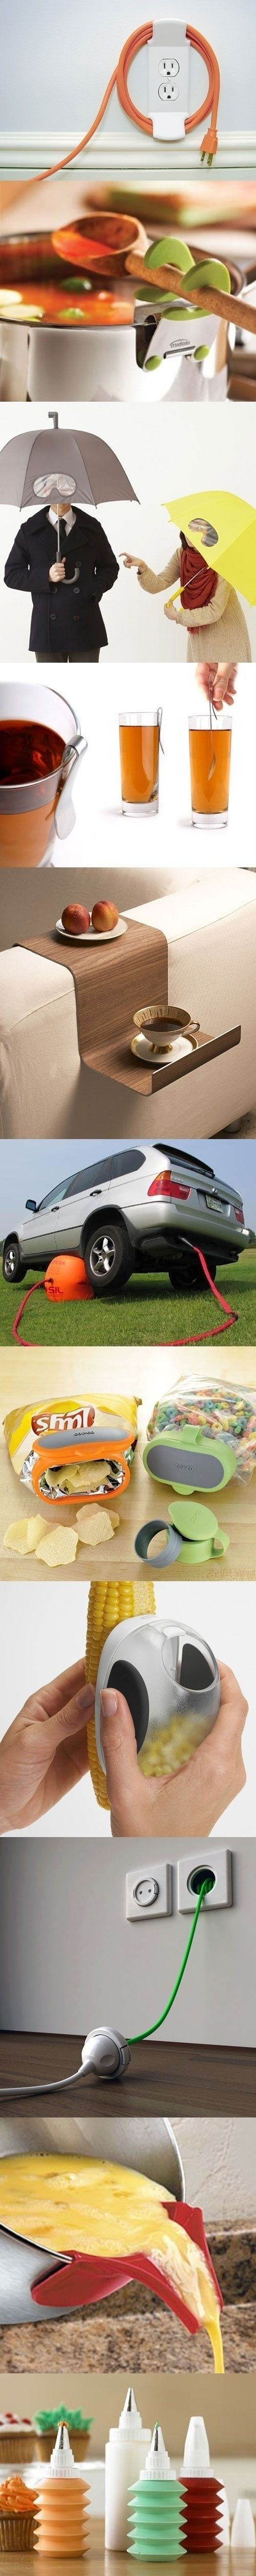 Just a few clever gadgets that we can all use...